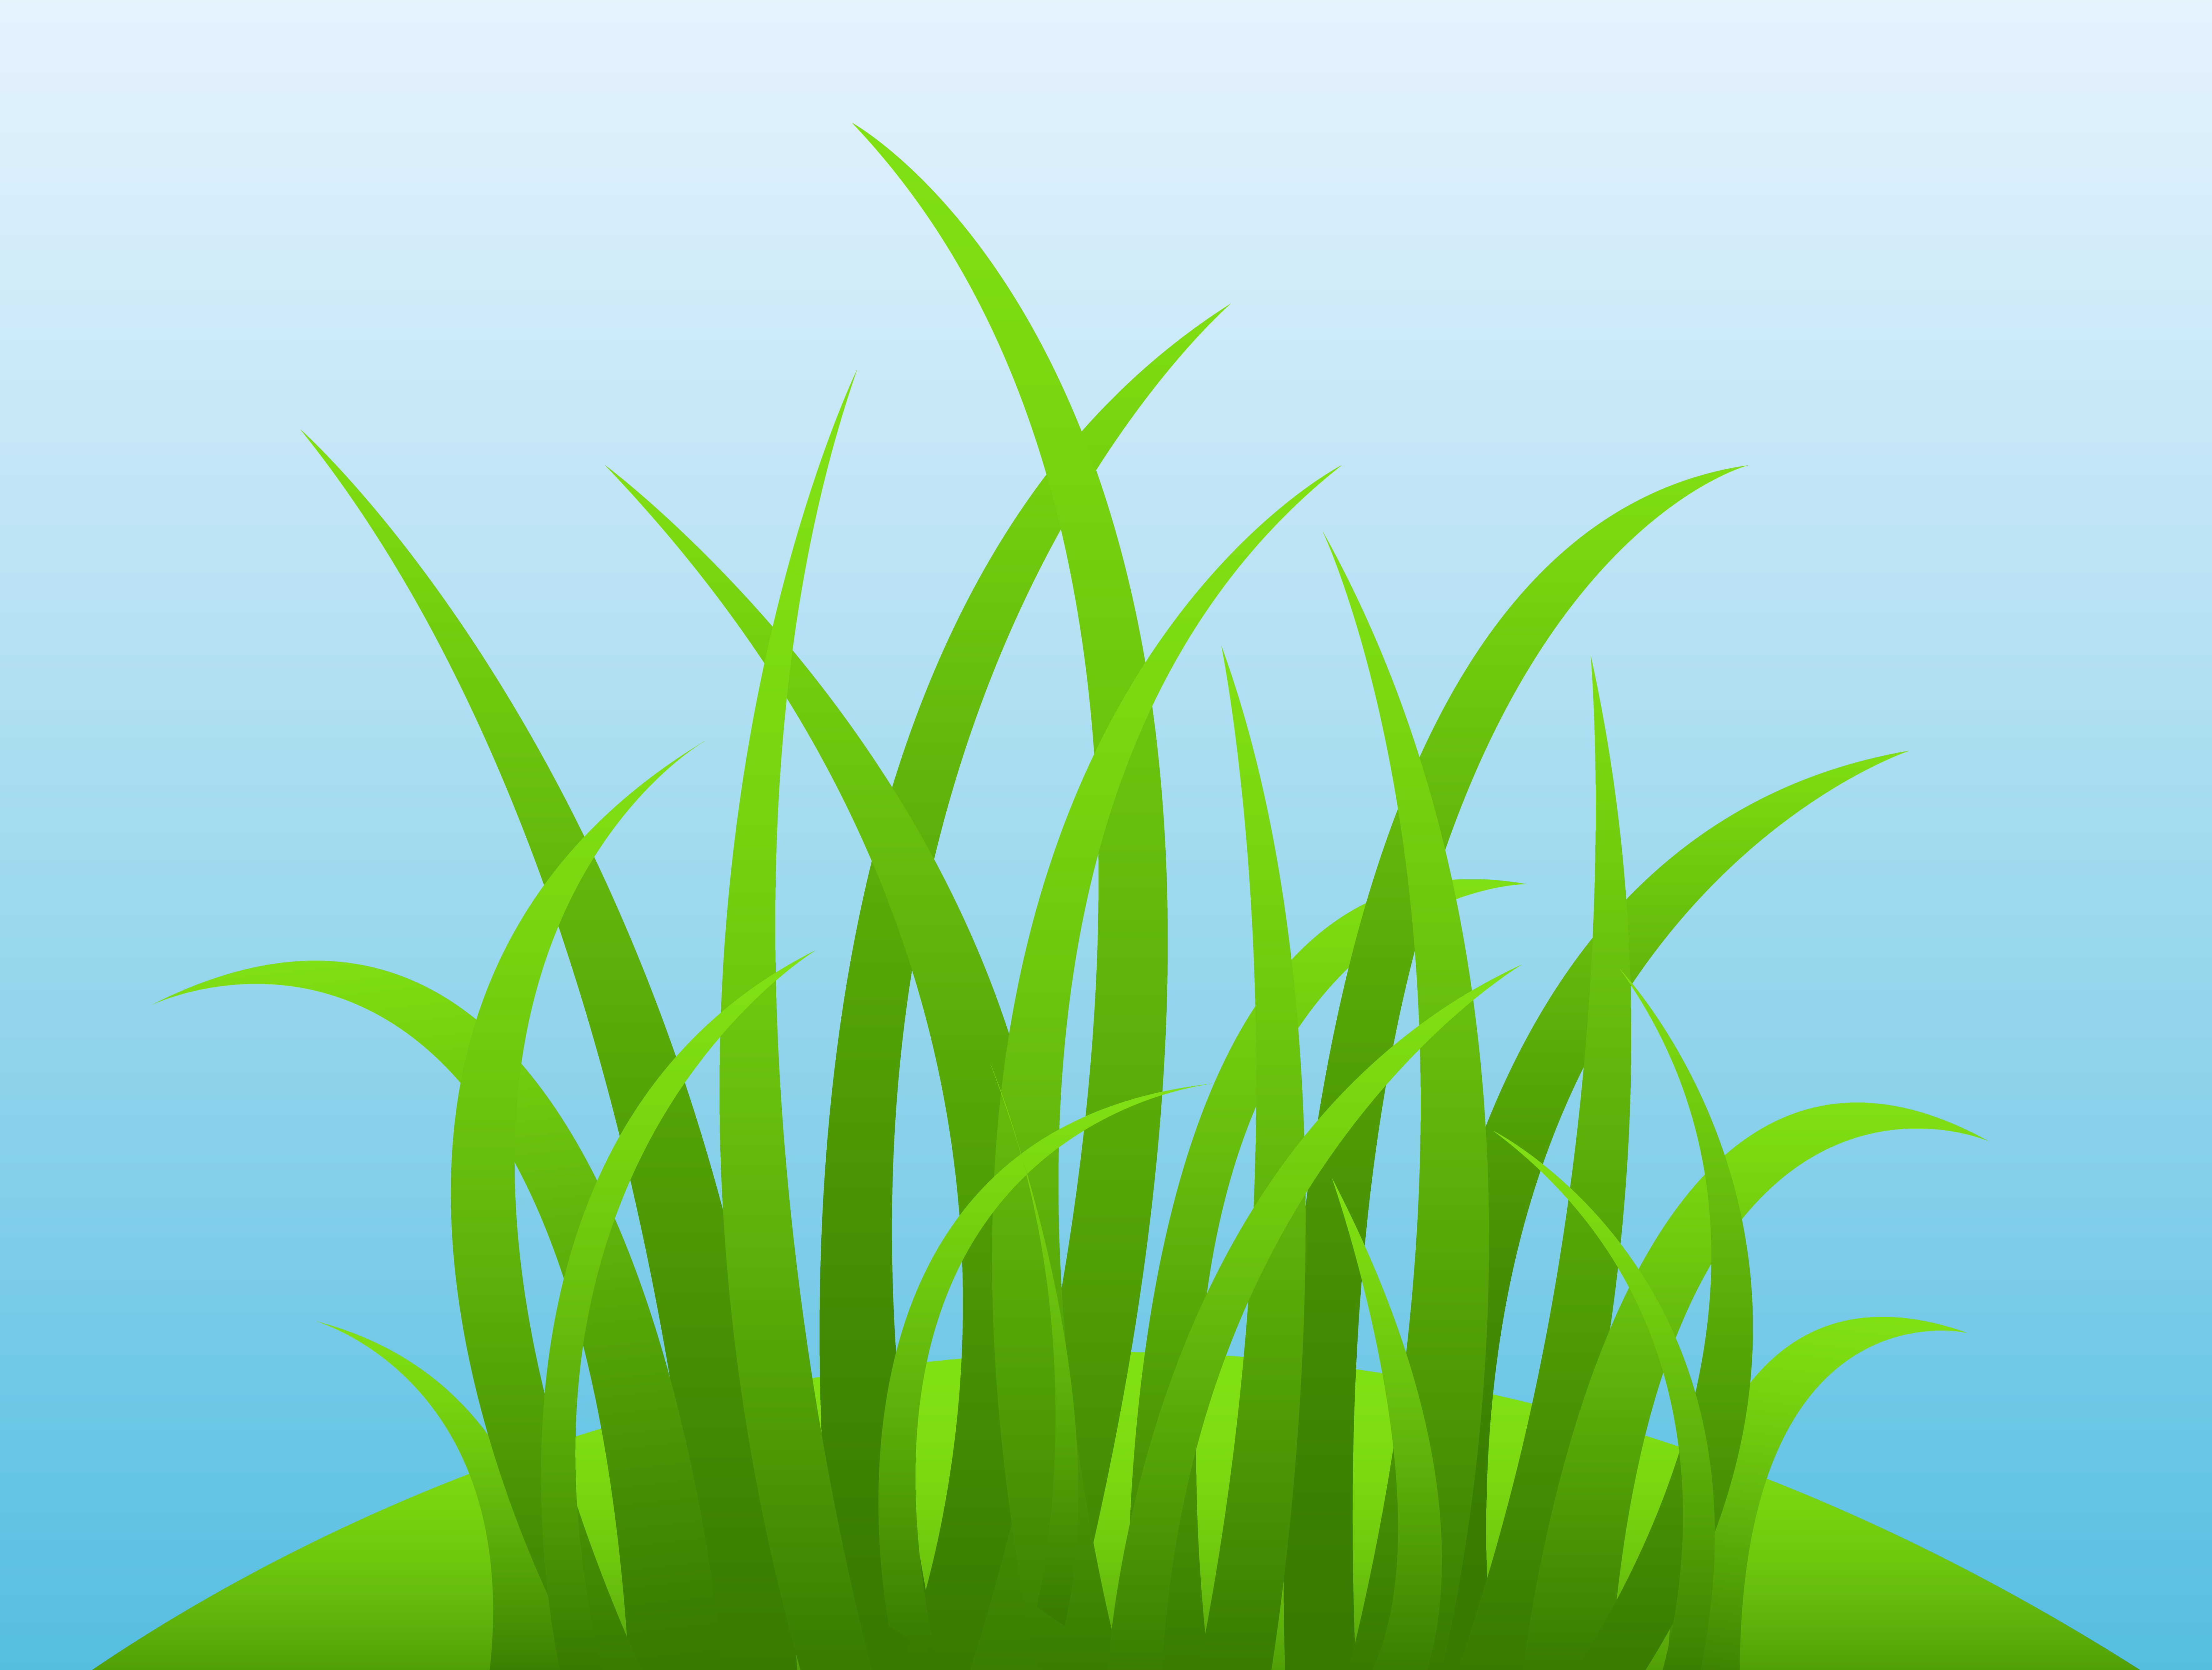 Drawn hill grassy hill Background on Grass Sky Hill